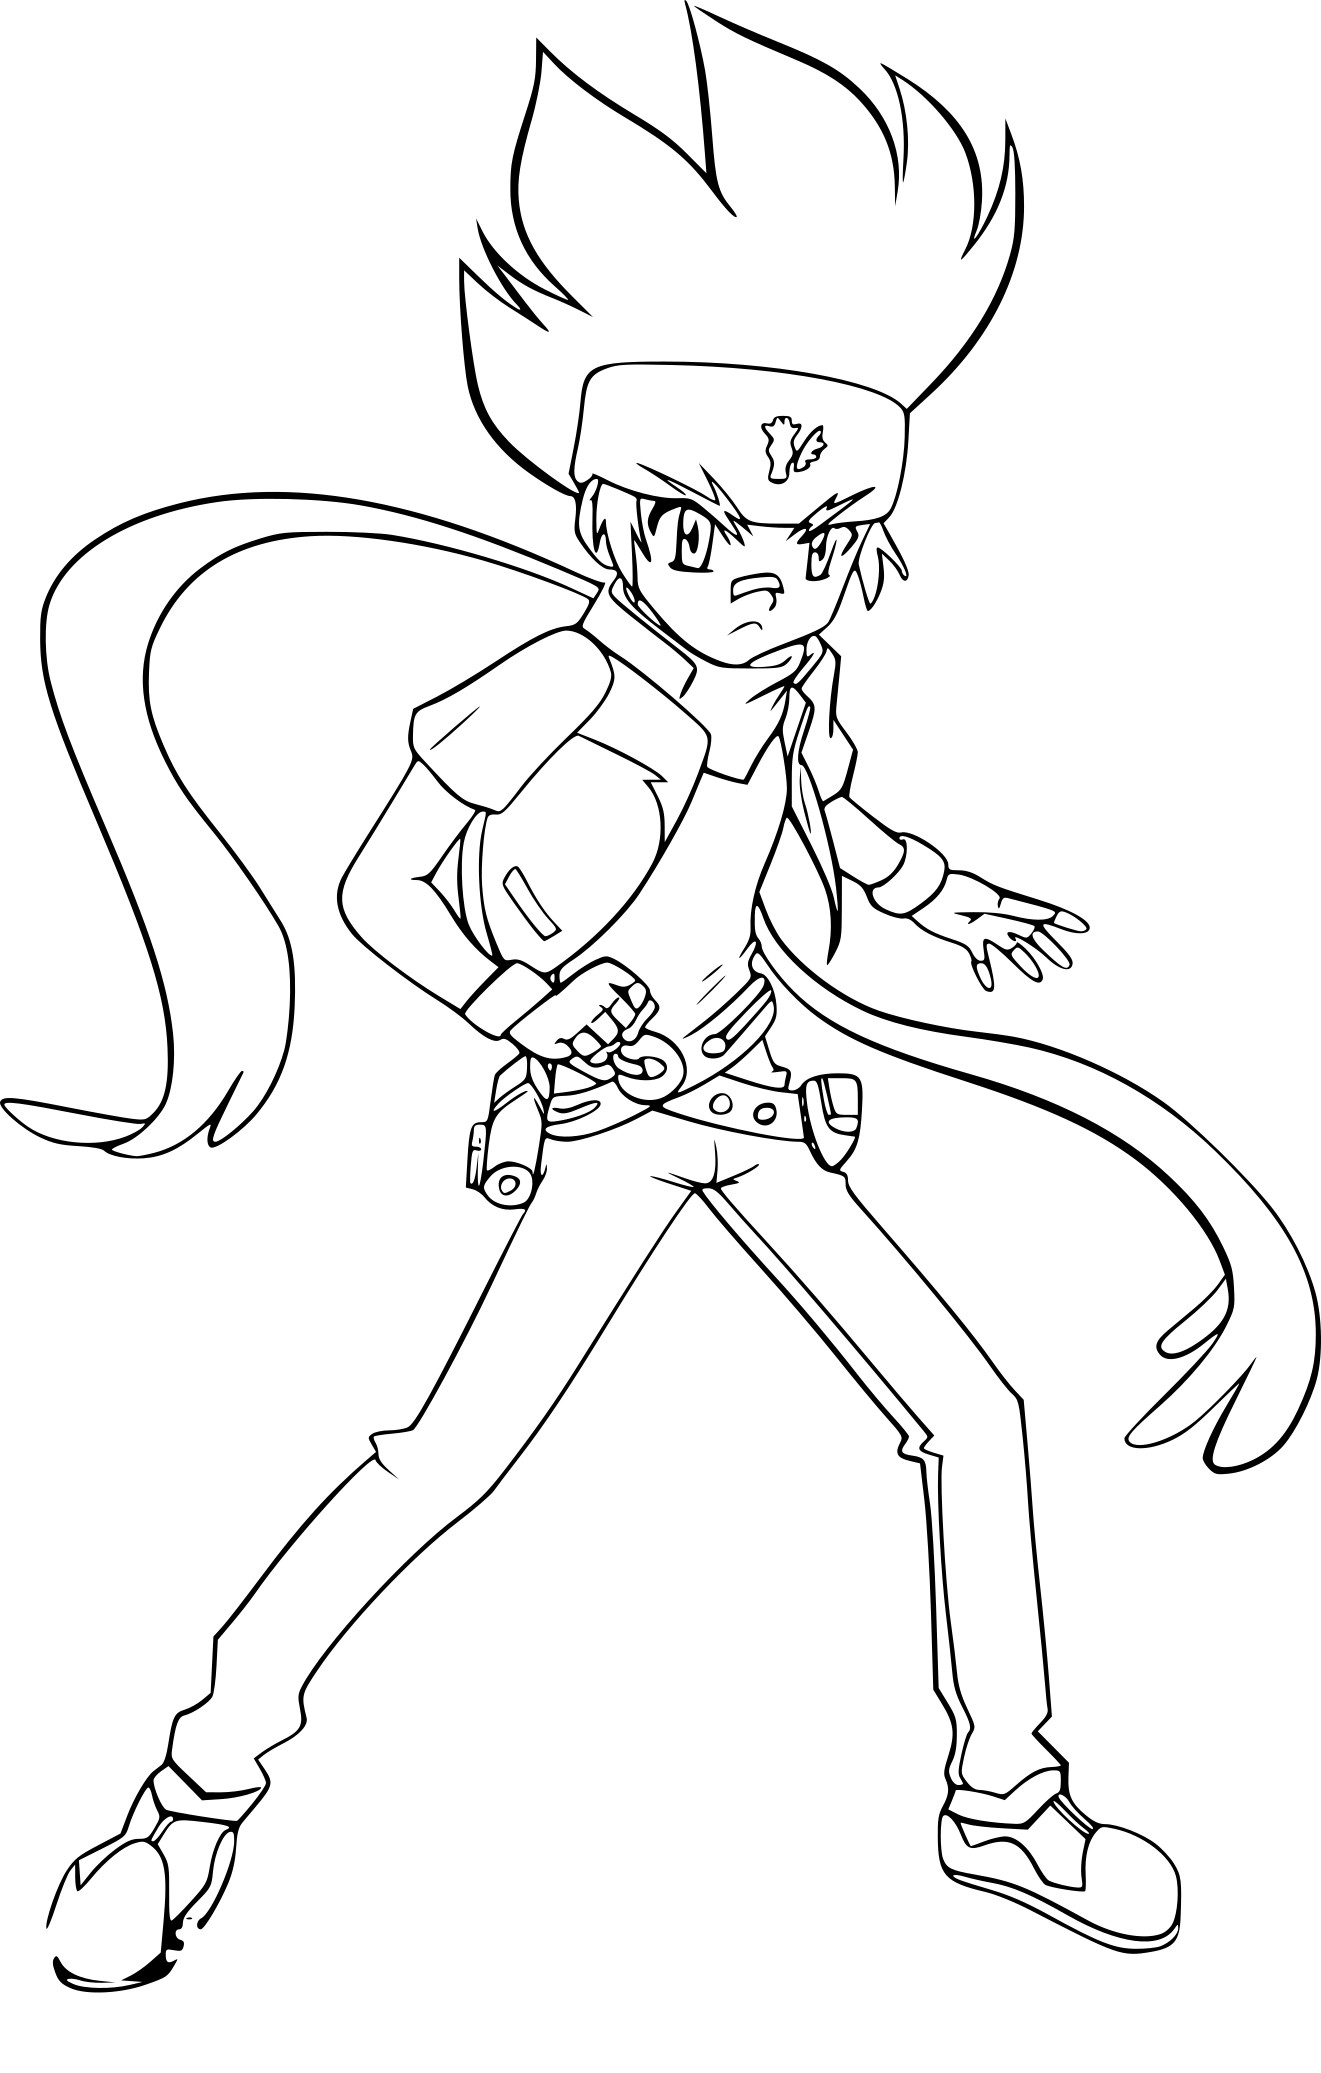 Coloriage beyblade ginga imprimer sur coloriages info - Coloriage toupie beyblade ...